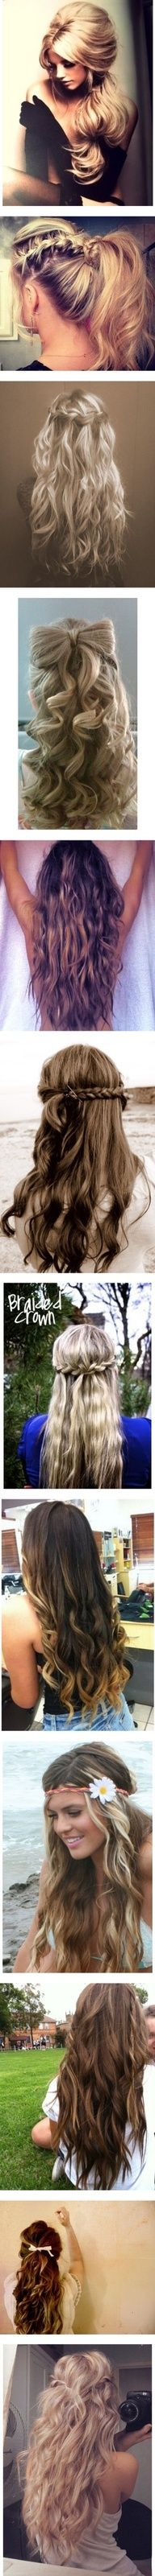 Hair styles. In love with the first two!